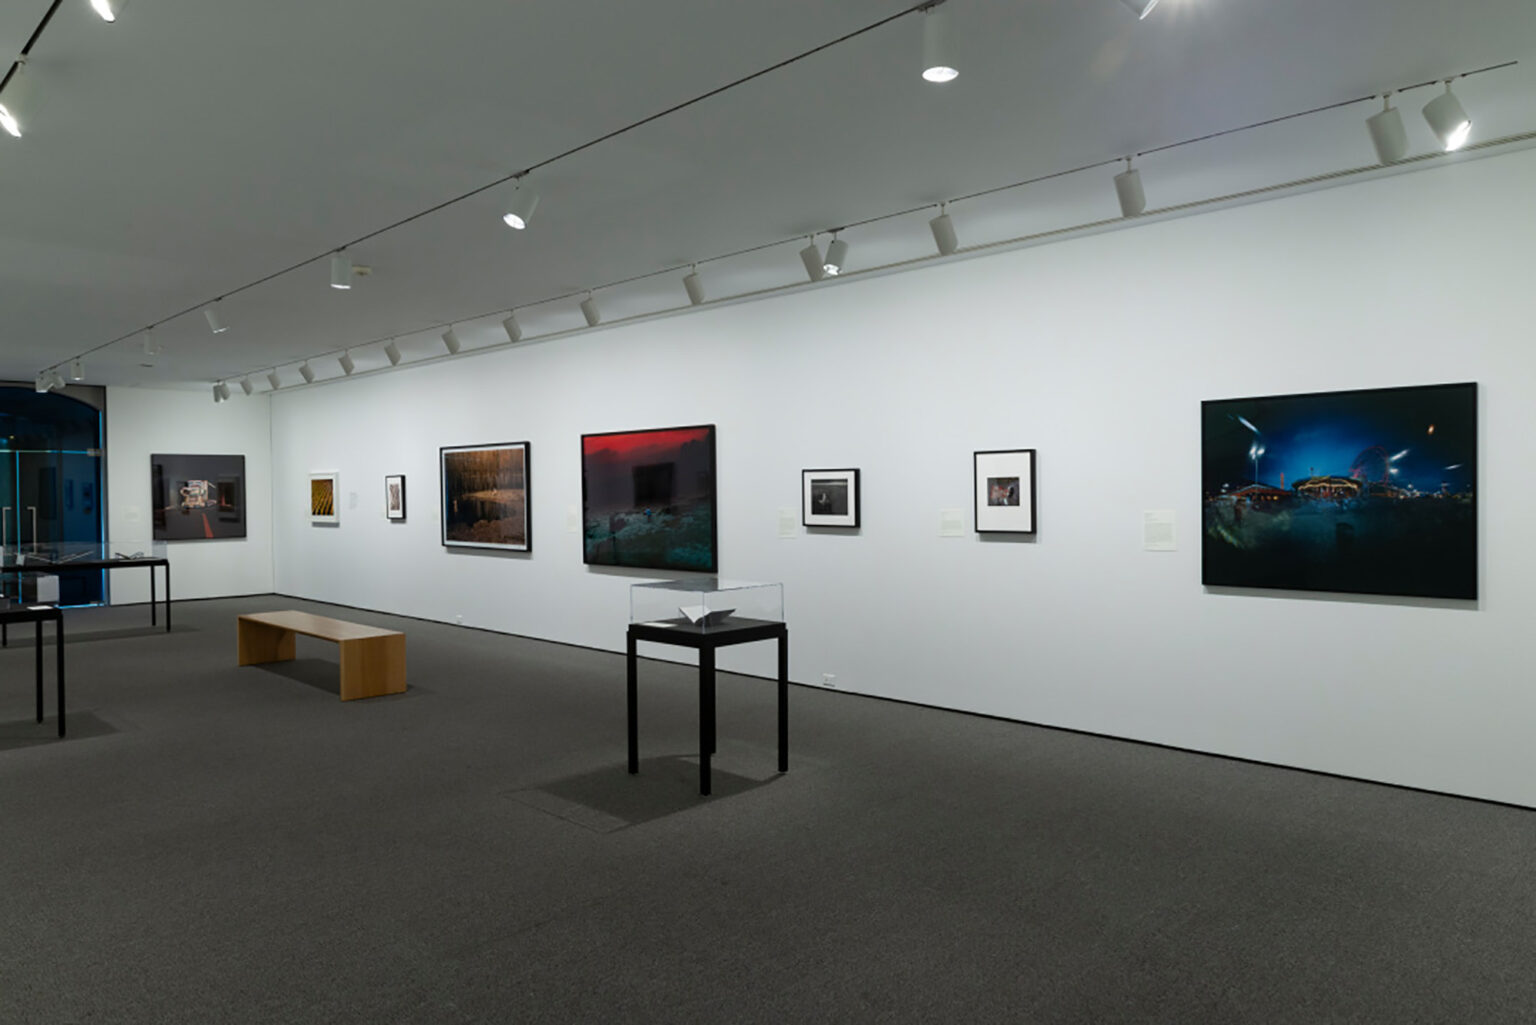 Installation view, Time Frames: Contemporary East Asian Photography. Photo by Mitro Hood